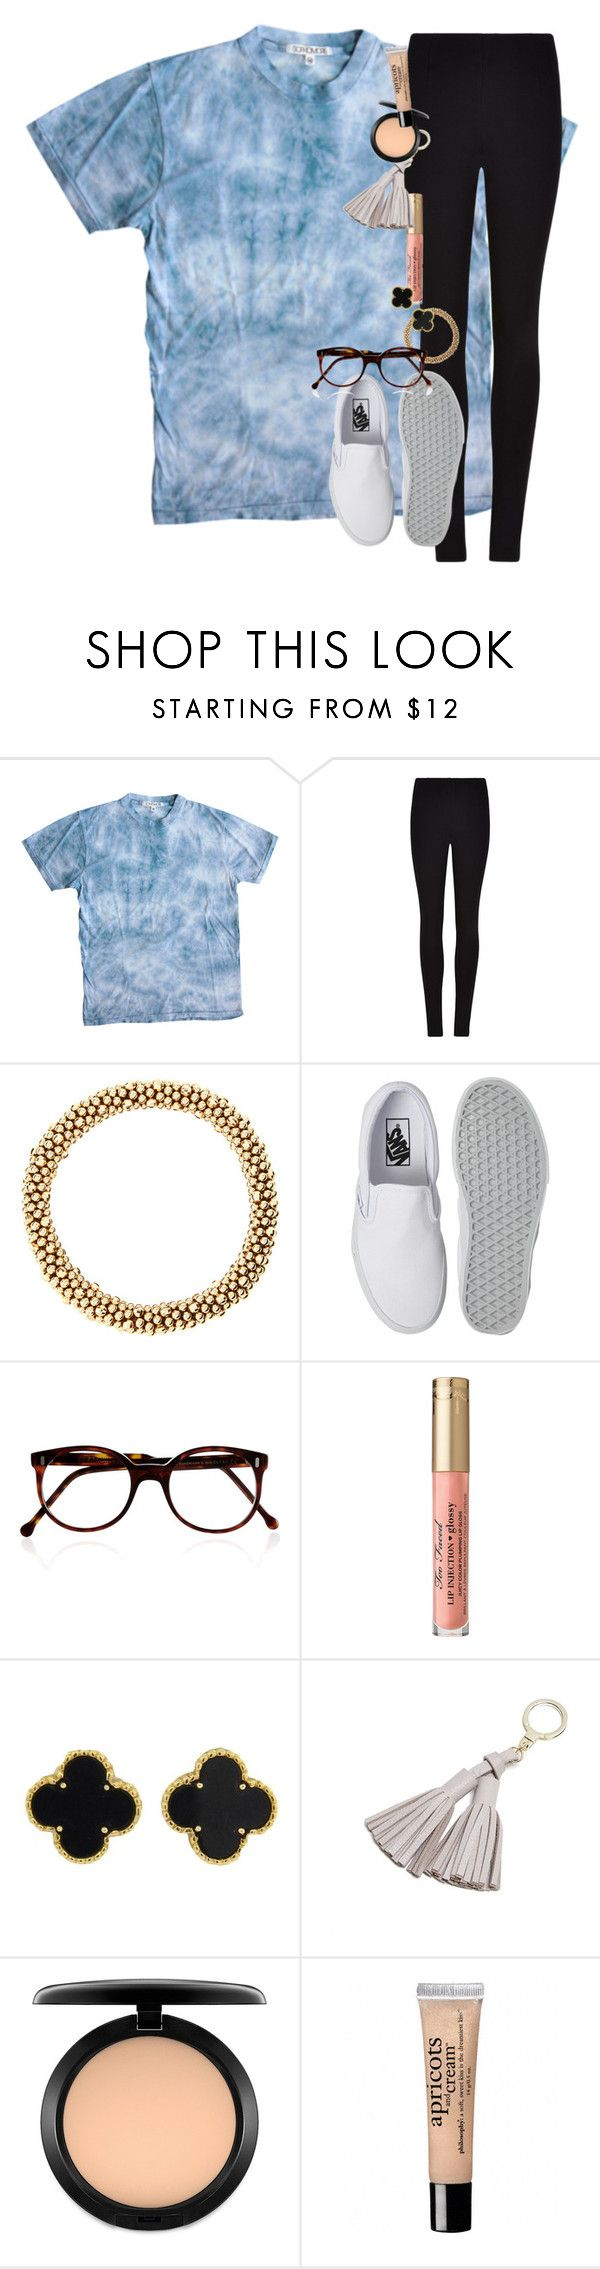 """Been sooo inactive!! "" by erinlmarkel ❤ liked on Polyvore featuring Sophomore, Winser London, Vans, Cutler and Gross, Van Cleef & Arpels, Kate Spade, MAC Cosmetics and philosophy"